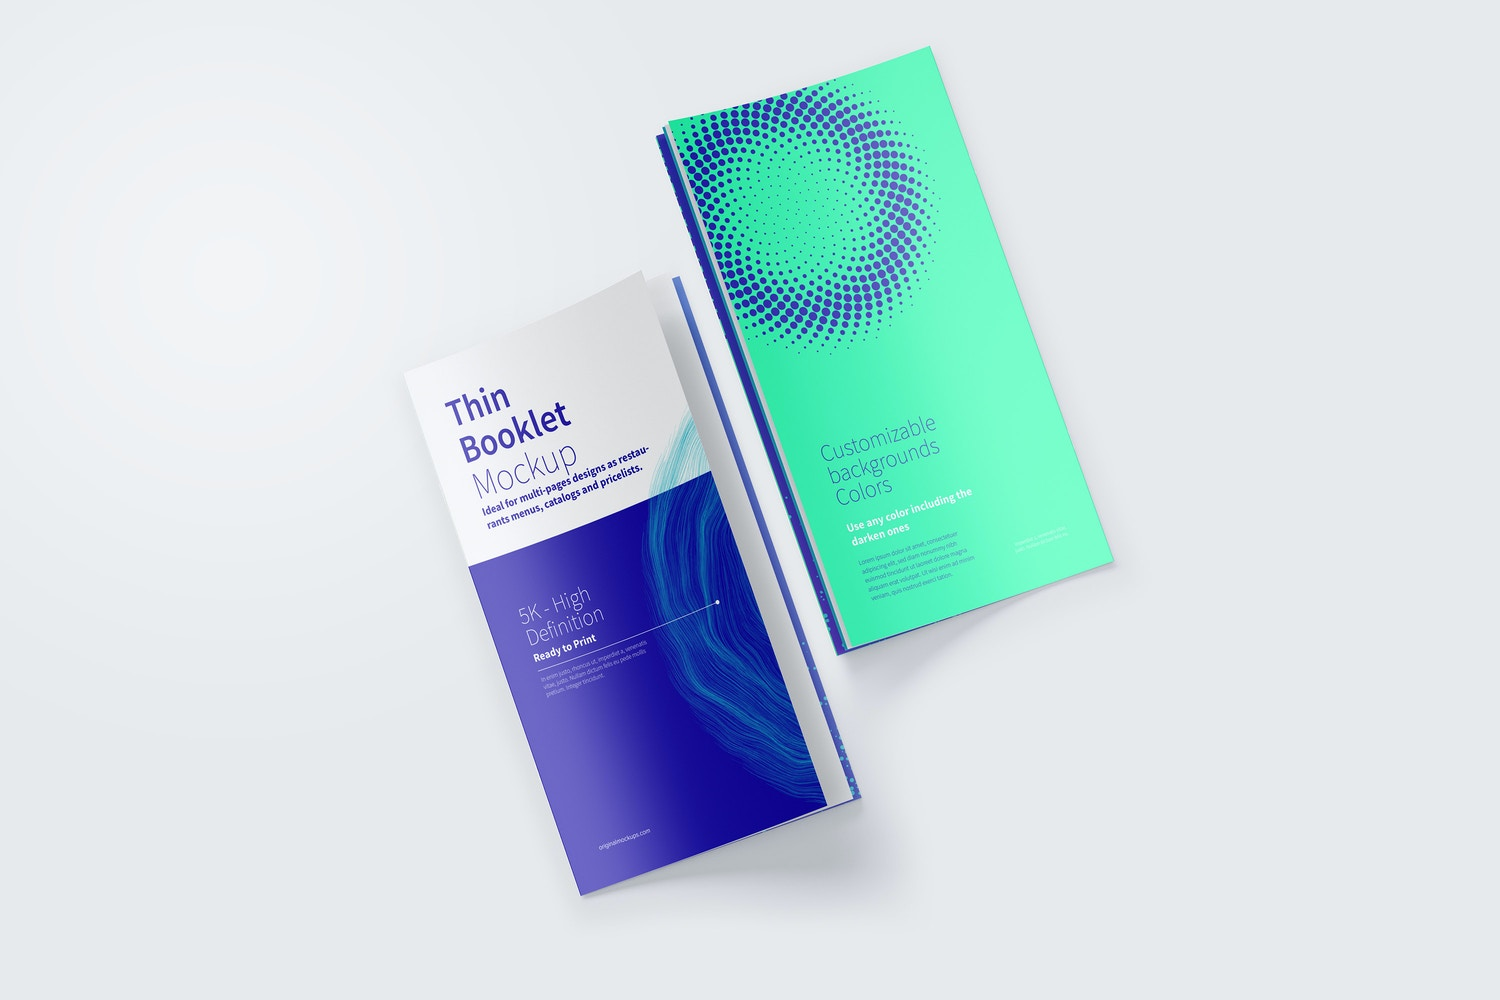 Thin Booklet Mockup 03 by Original Mockups on Original Mockups